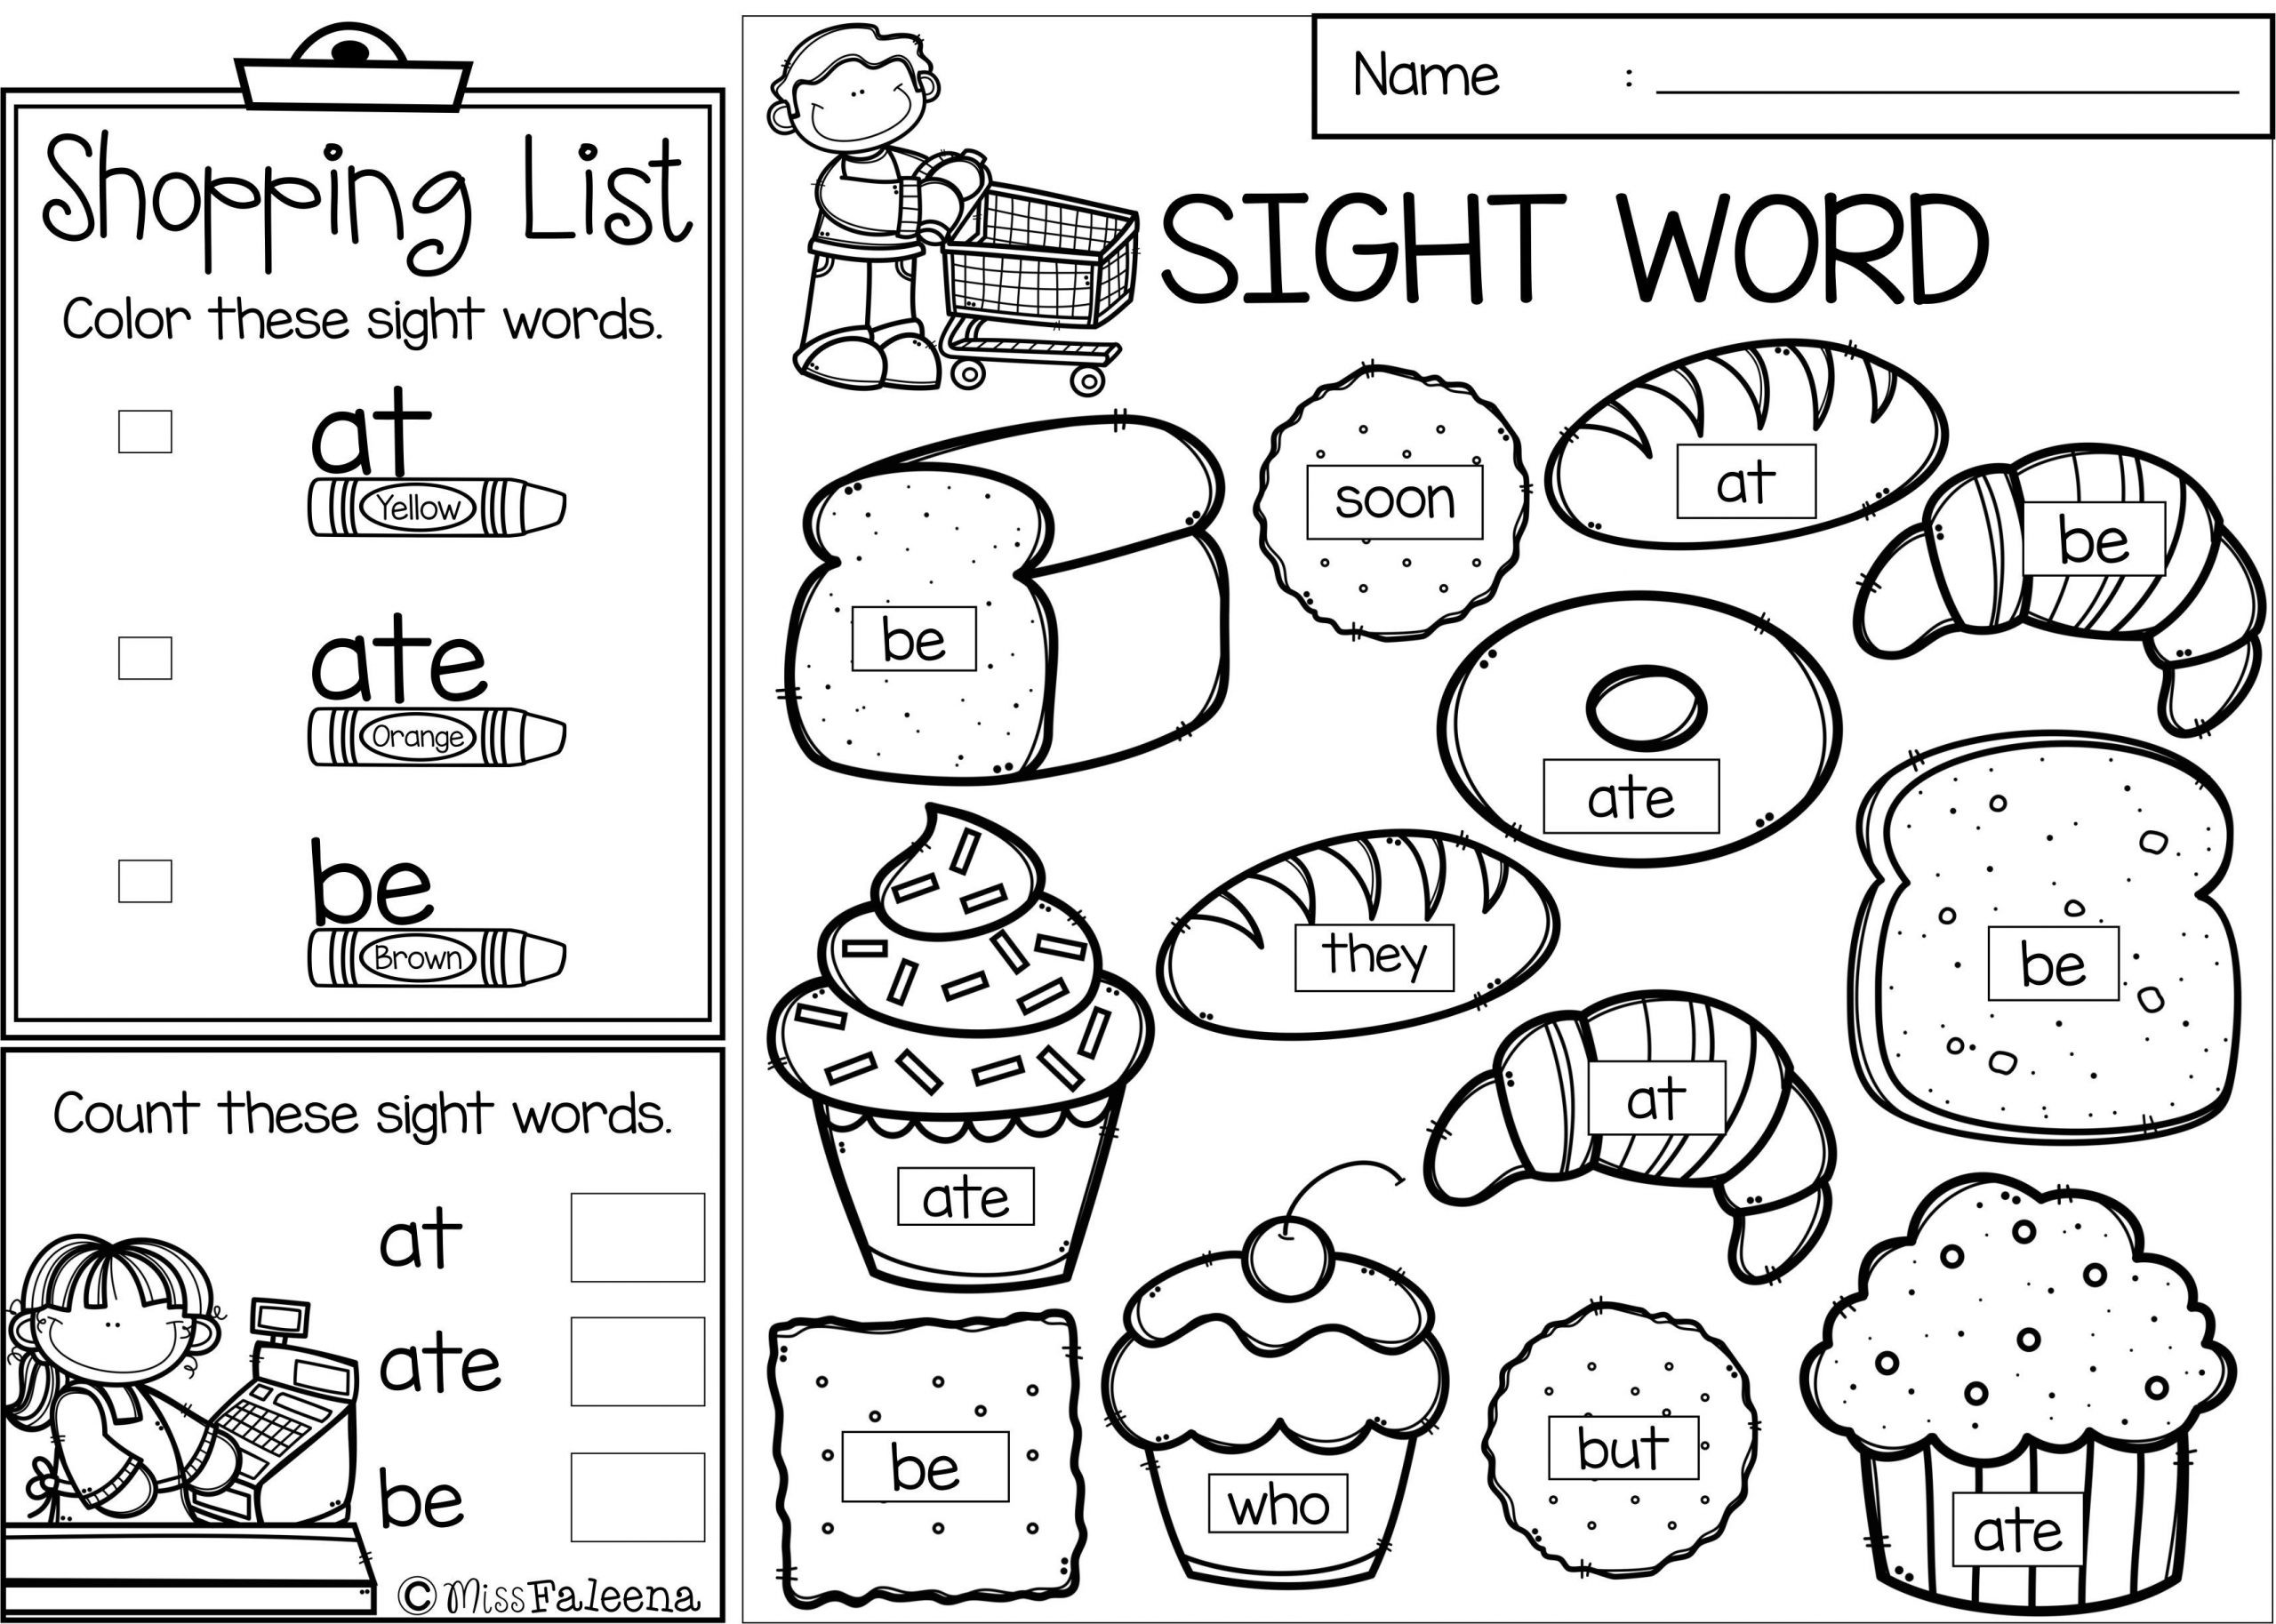 Coloring Pages for 3rd Graders Coloring Sheet Free Sight Word Pages Picture Ideas Book